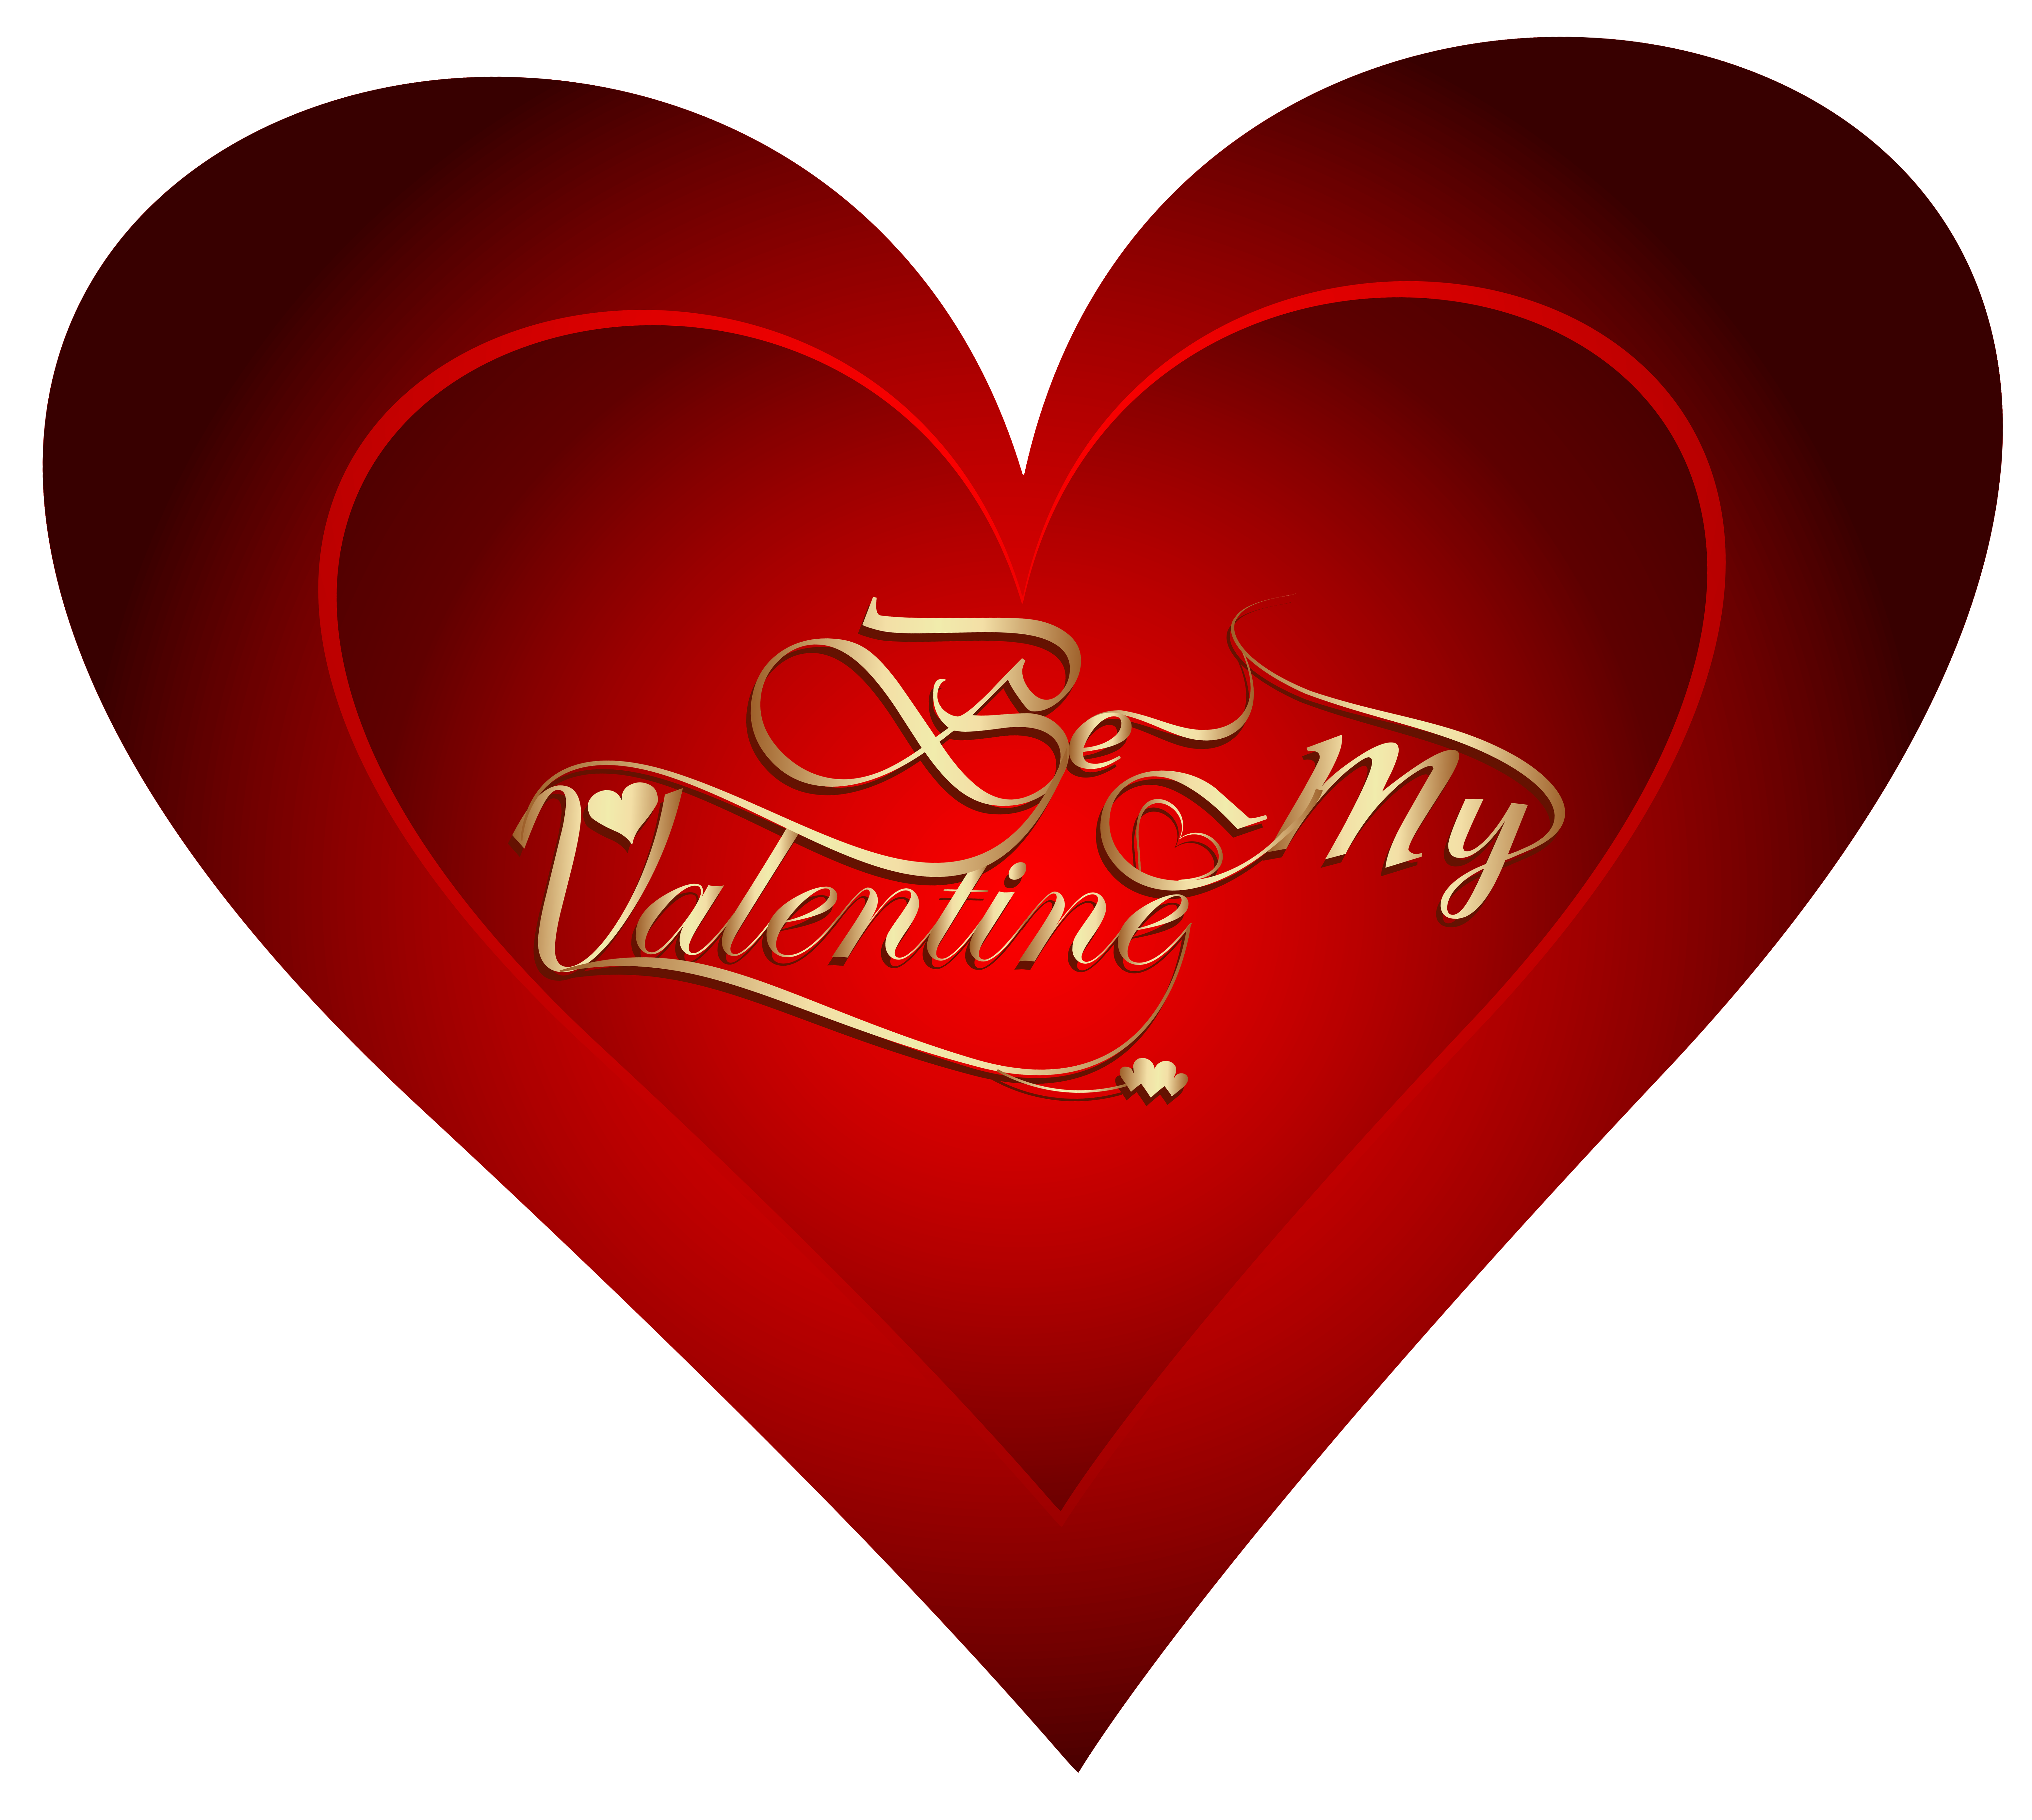 6221x5571 Be My Valentine Heart Png Clipart Imageu200b Gallery Yopriceville